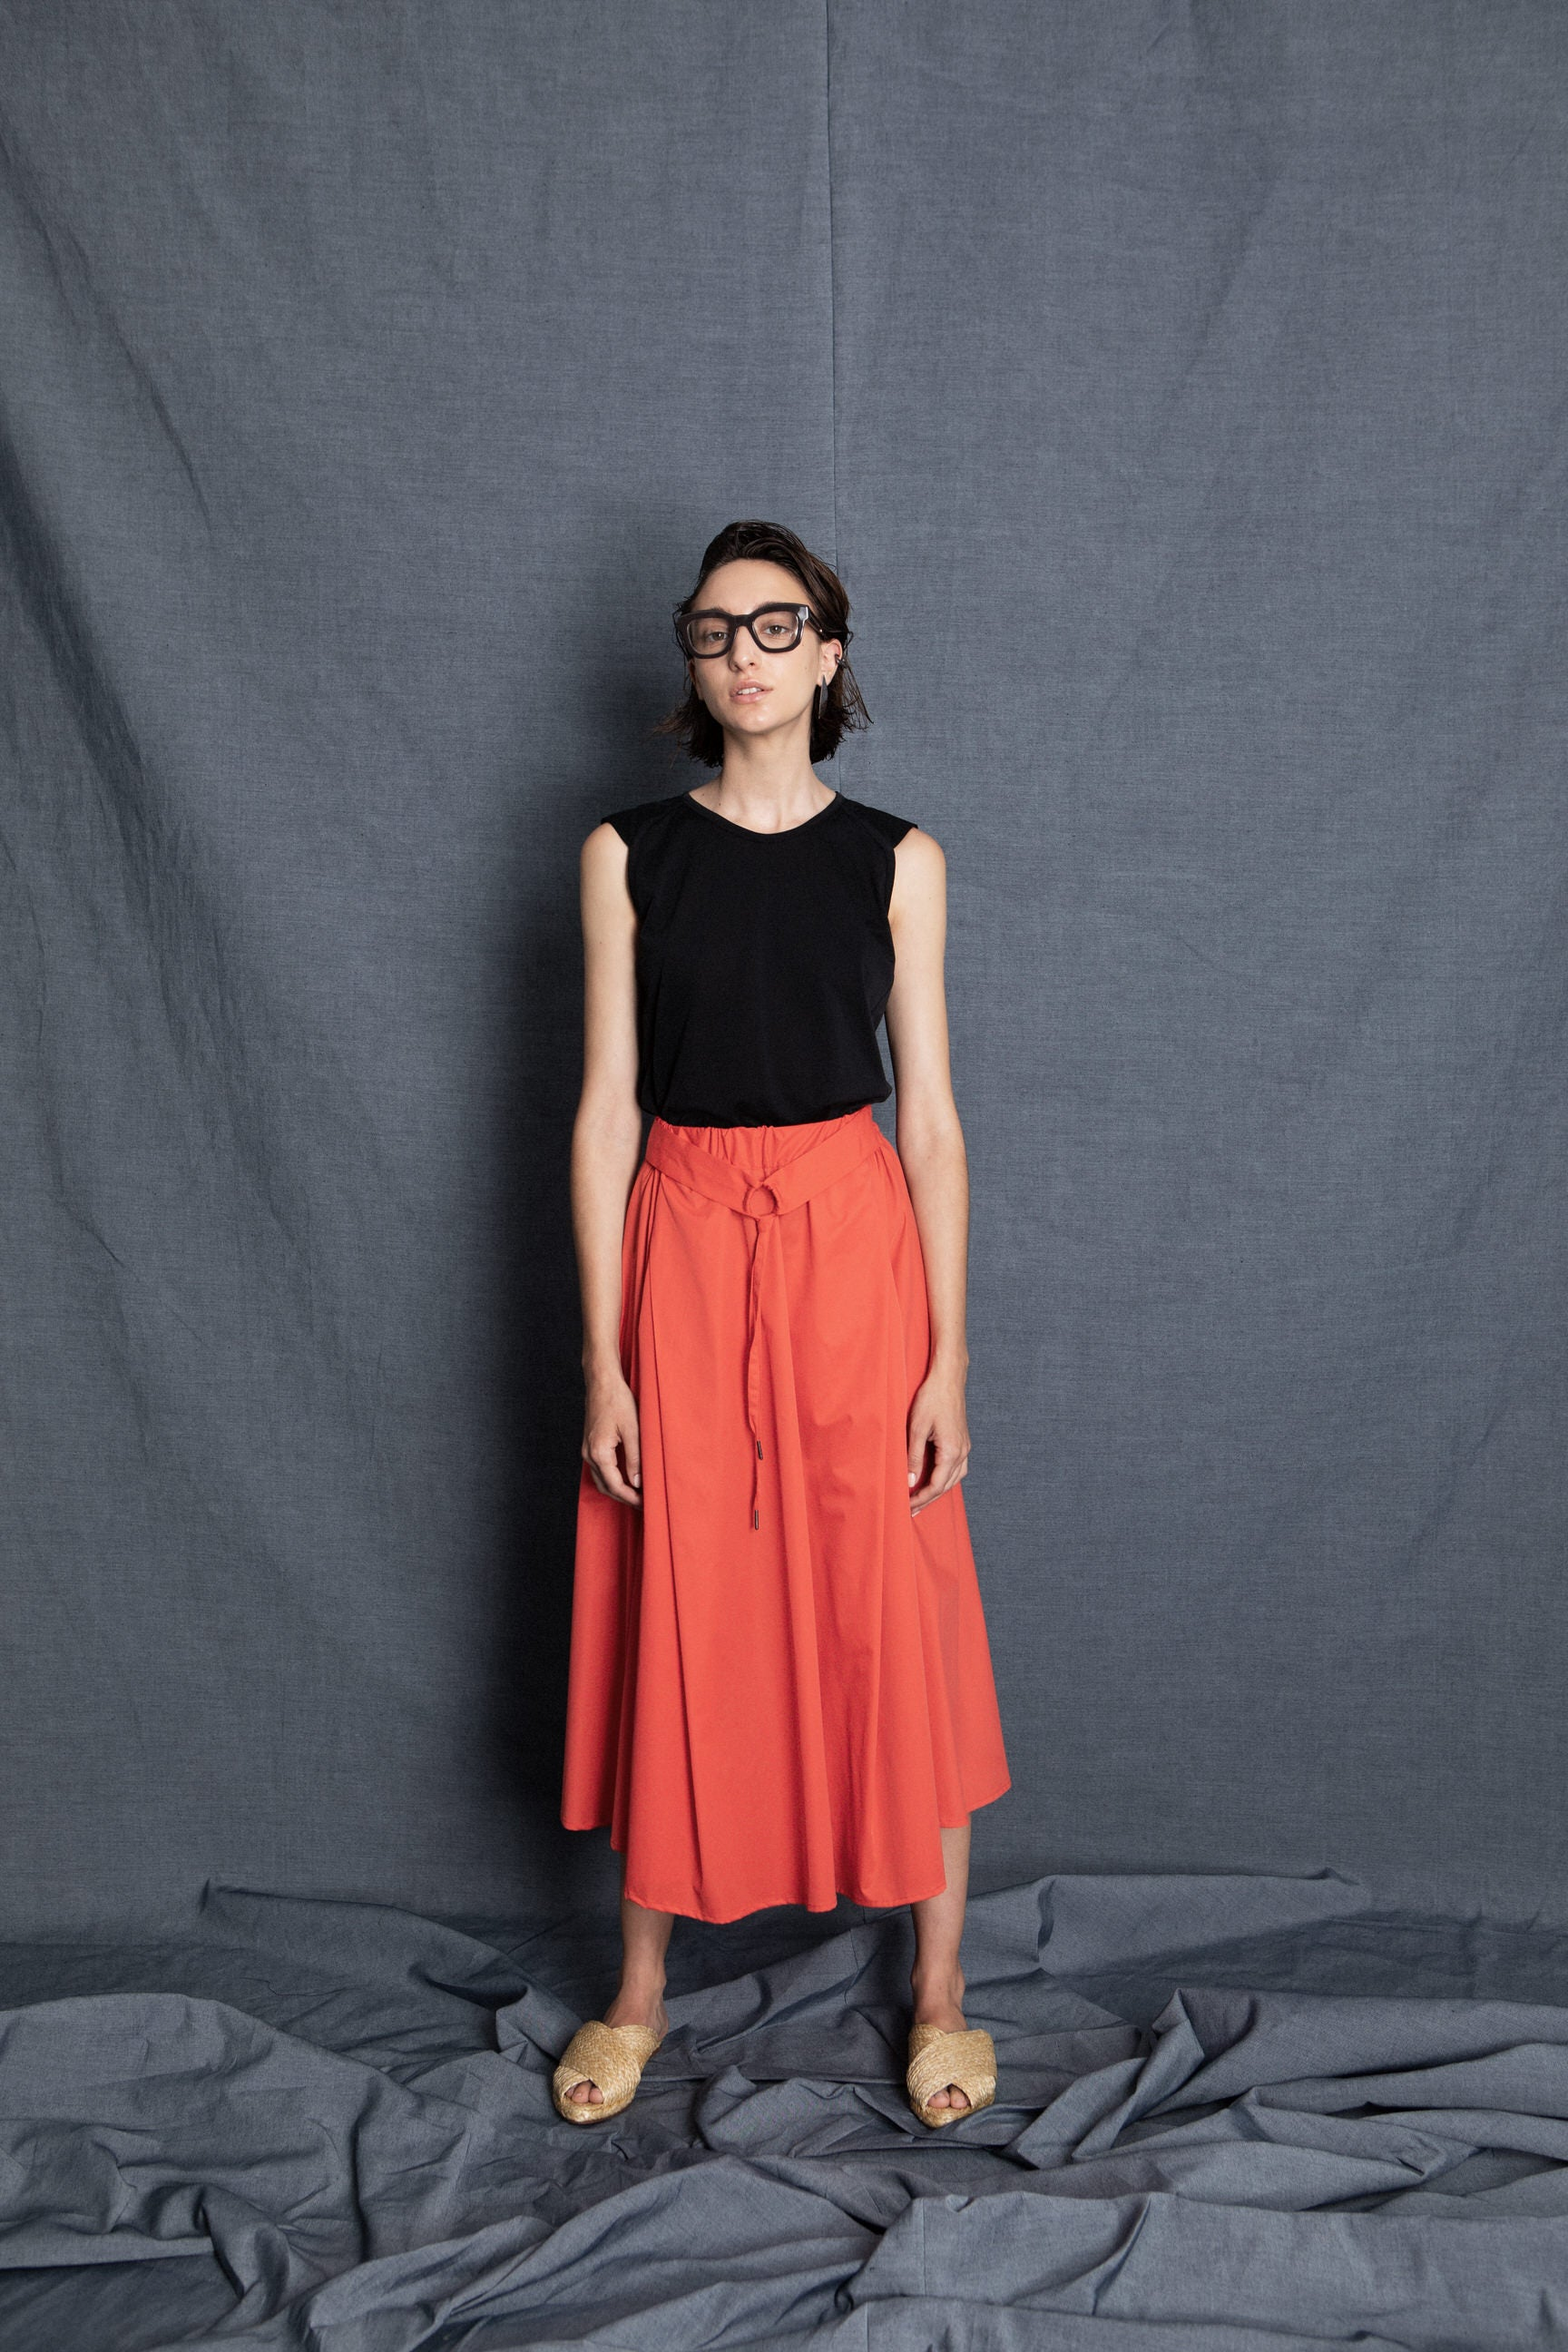 Tuty red/orange skirt - heroic-online